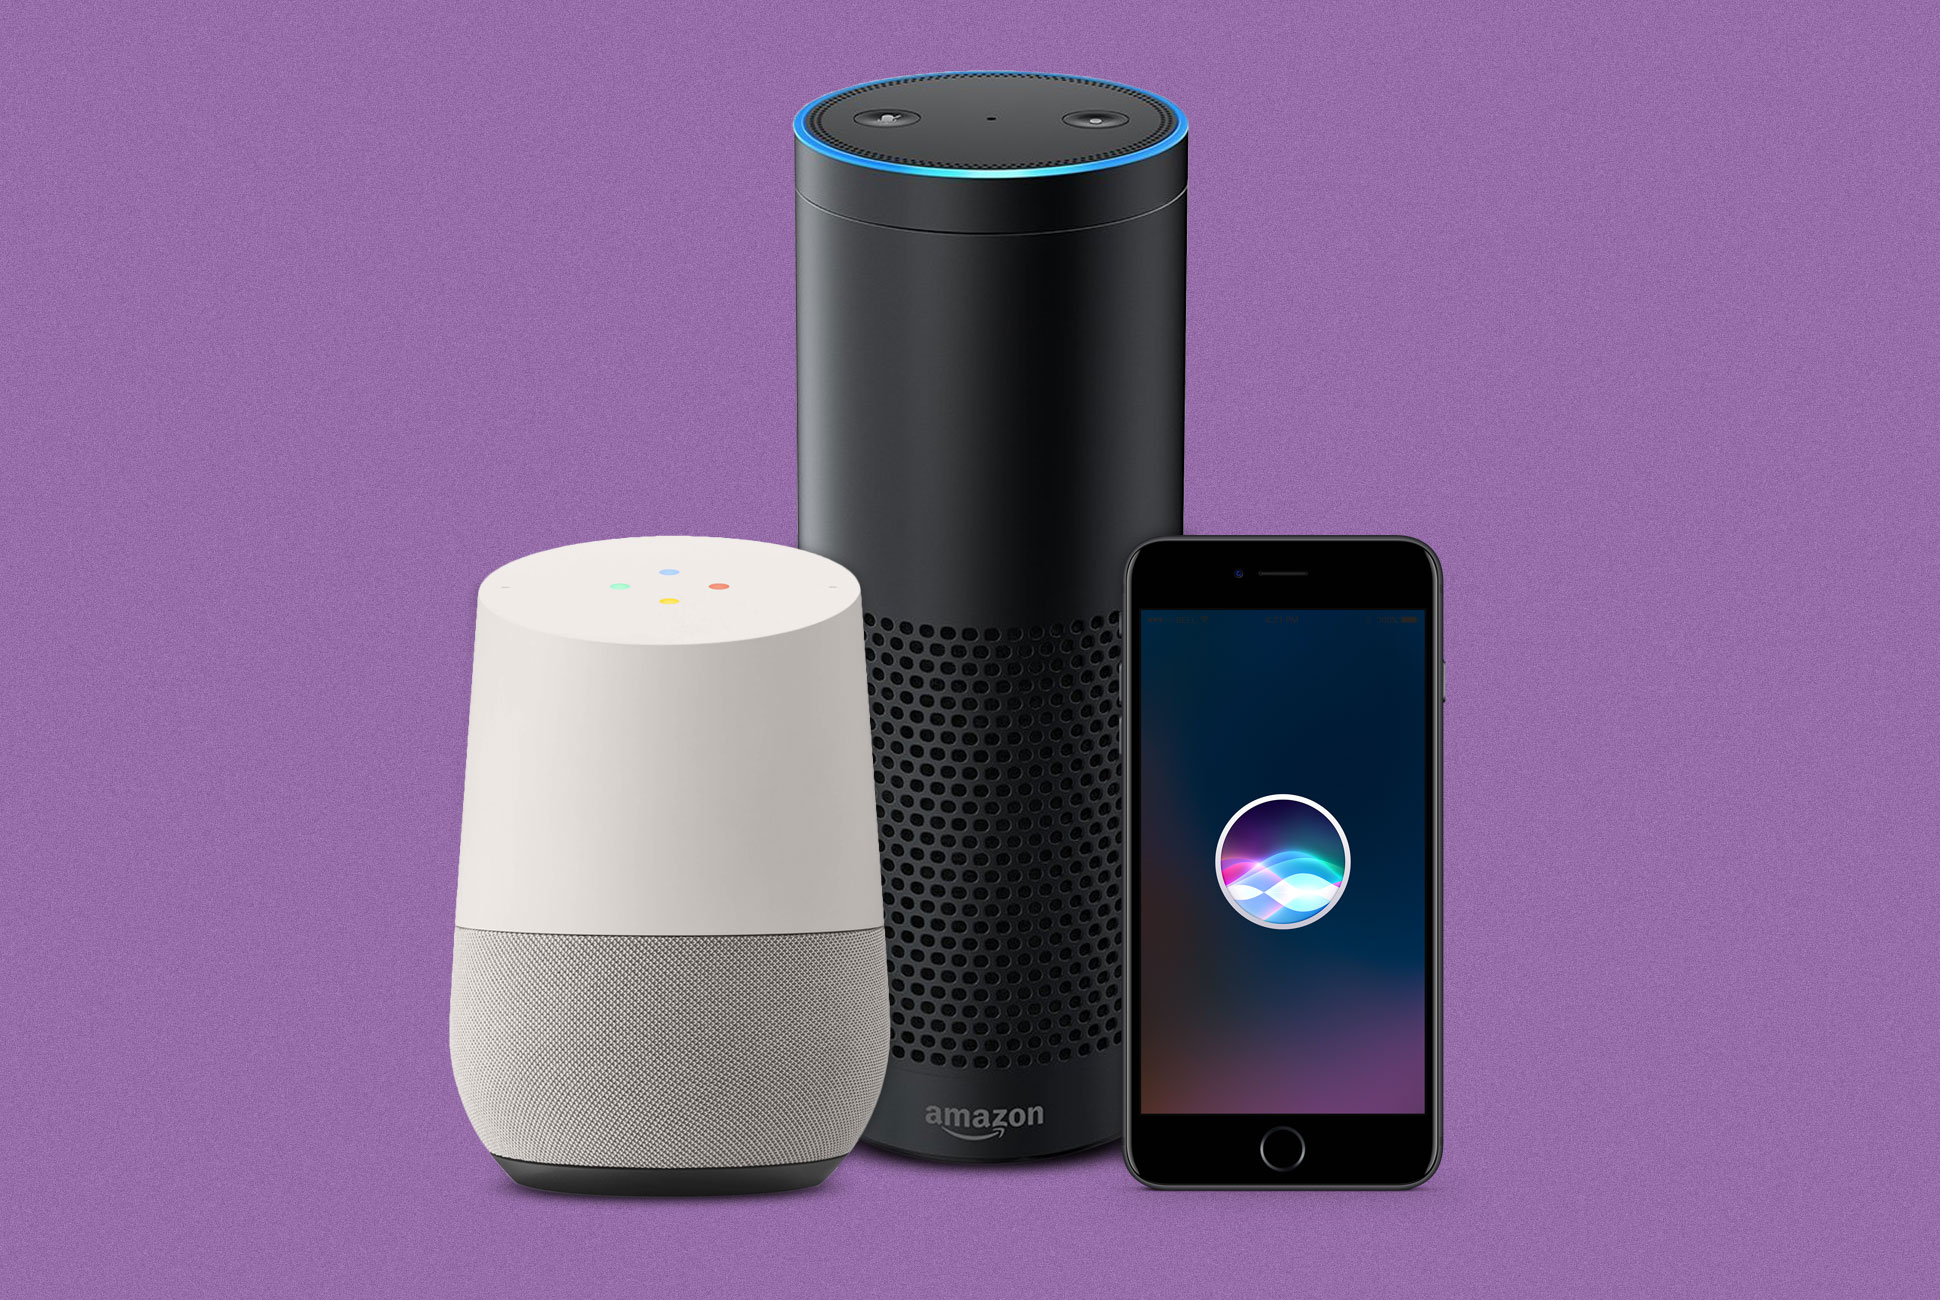 Top tech companies have their own virtual assistants